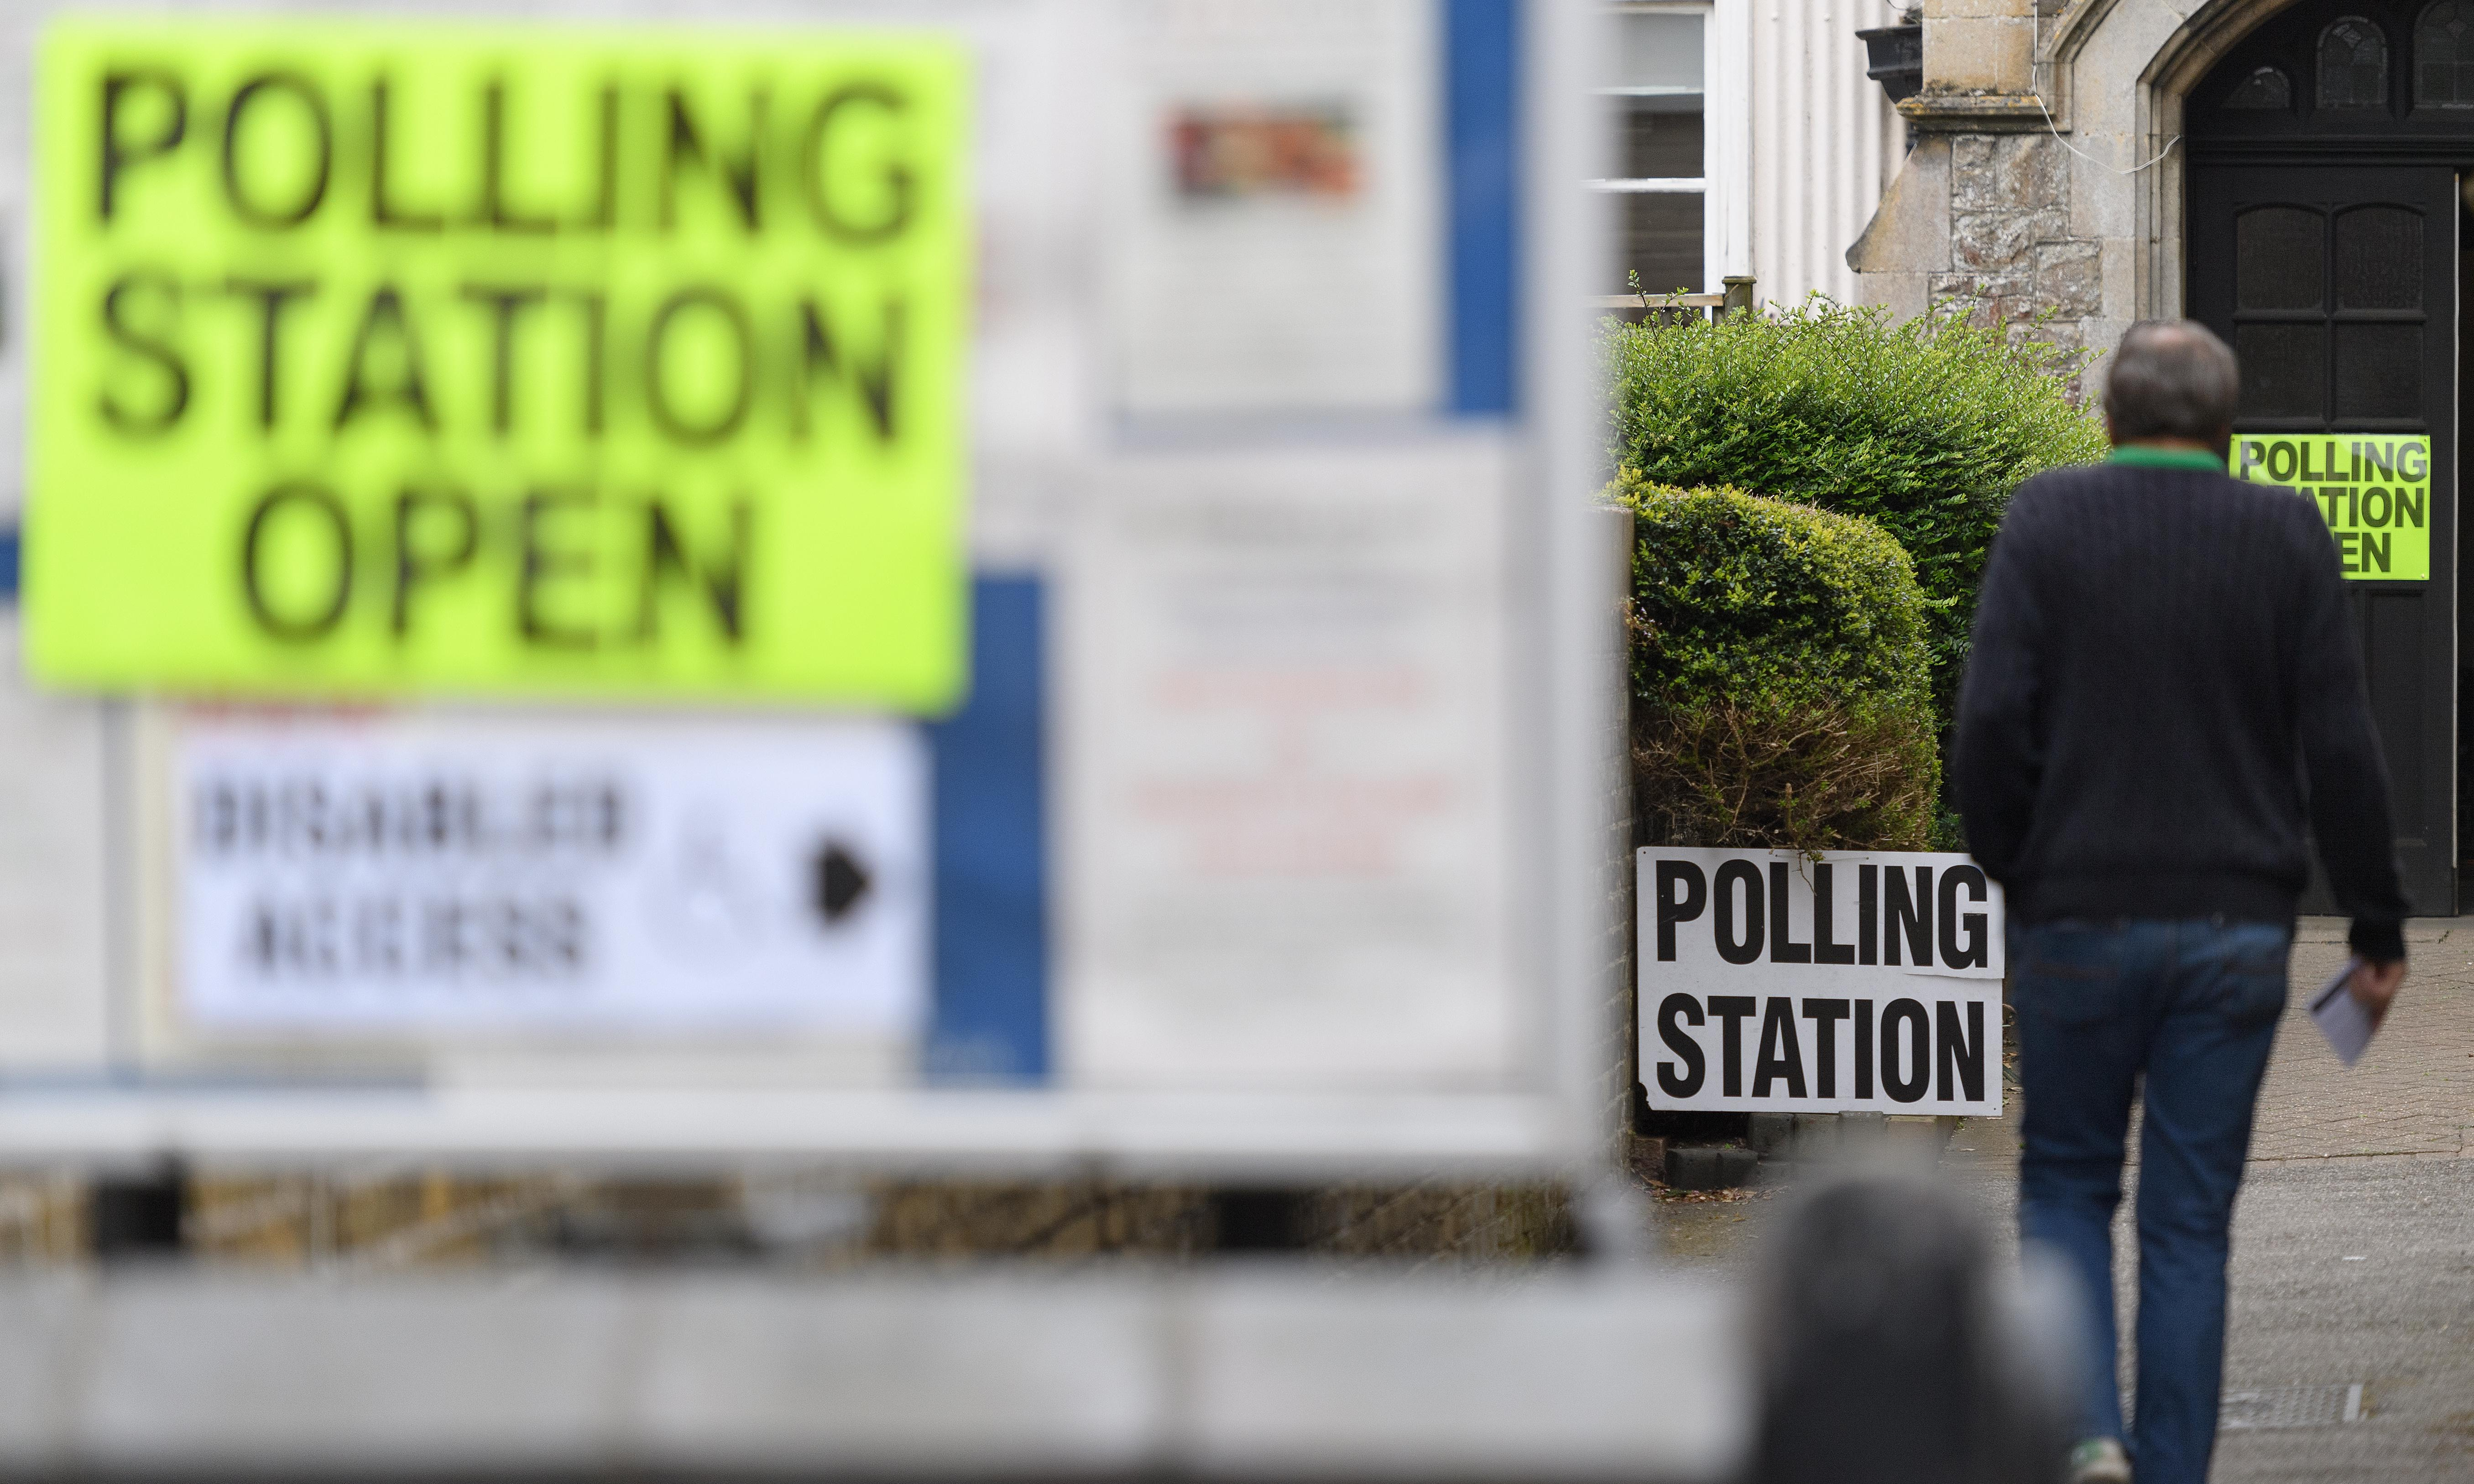 About 750 people denied vote in ID trial at local elections